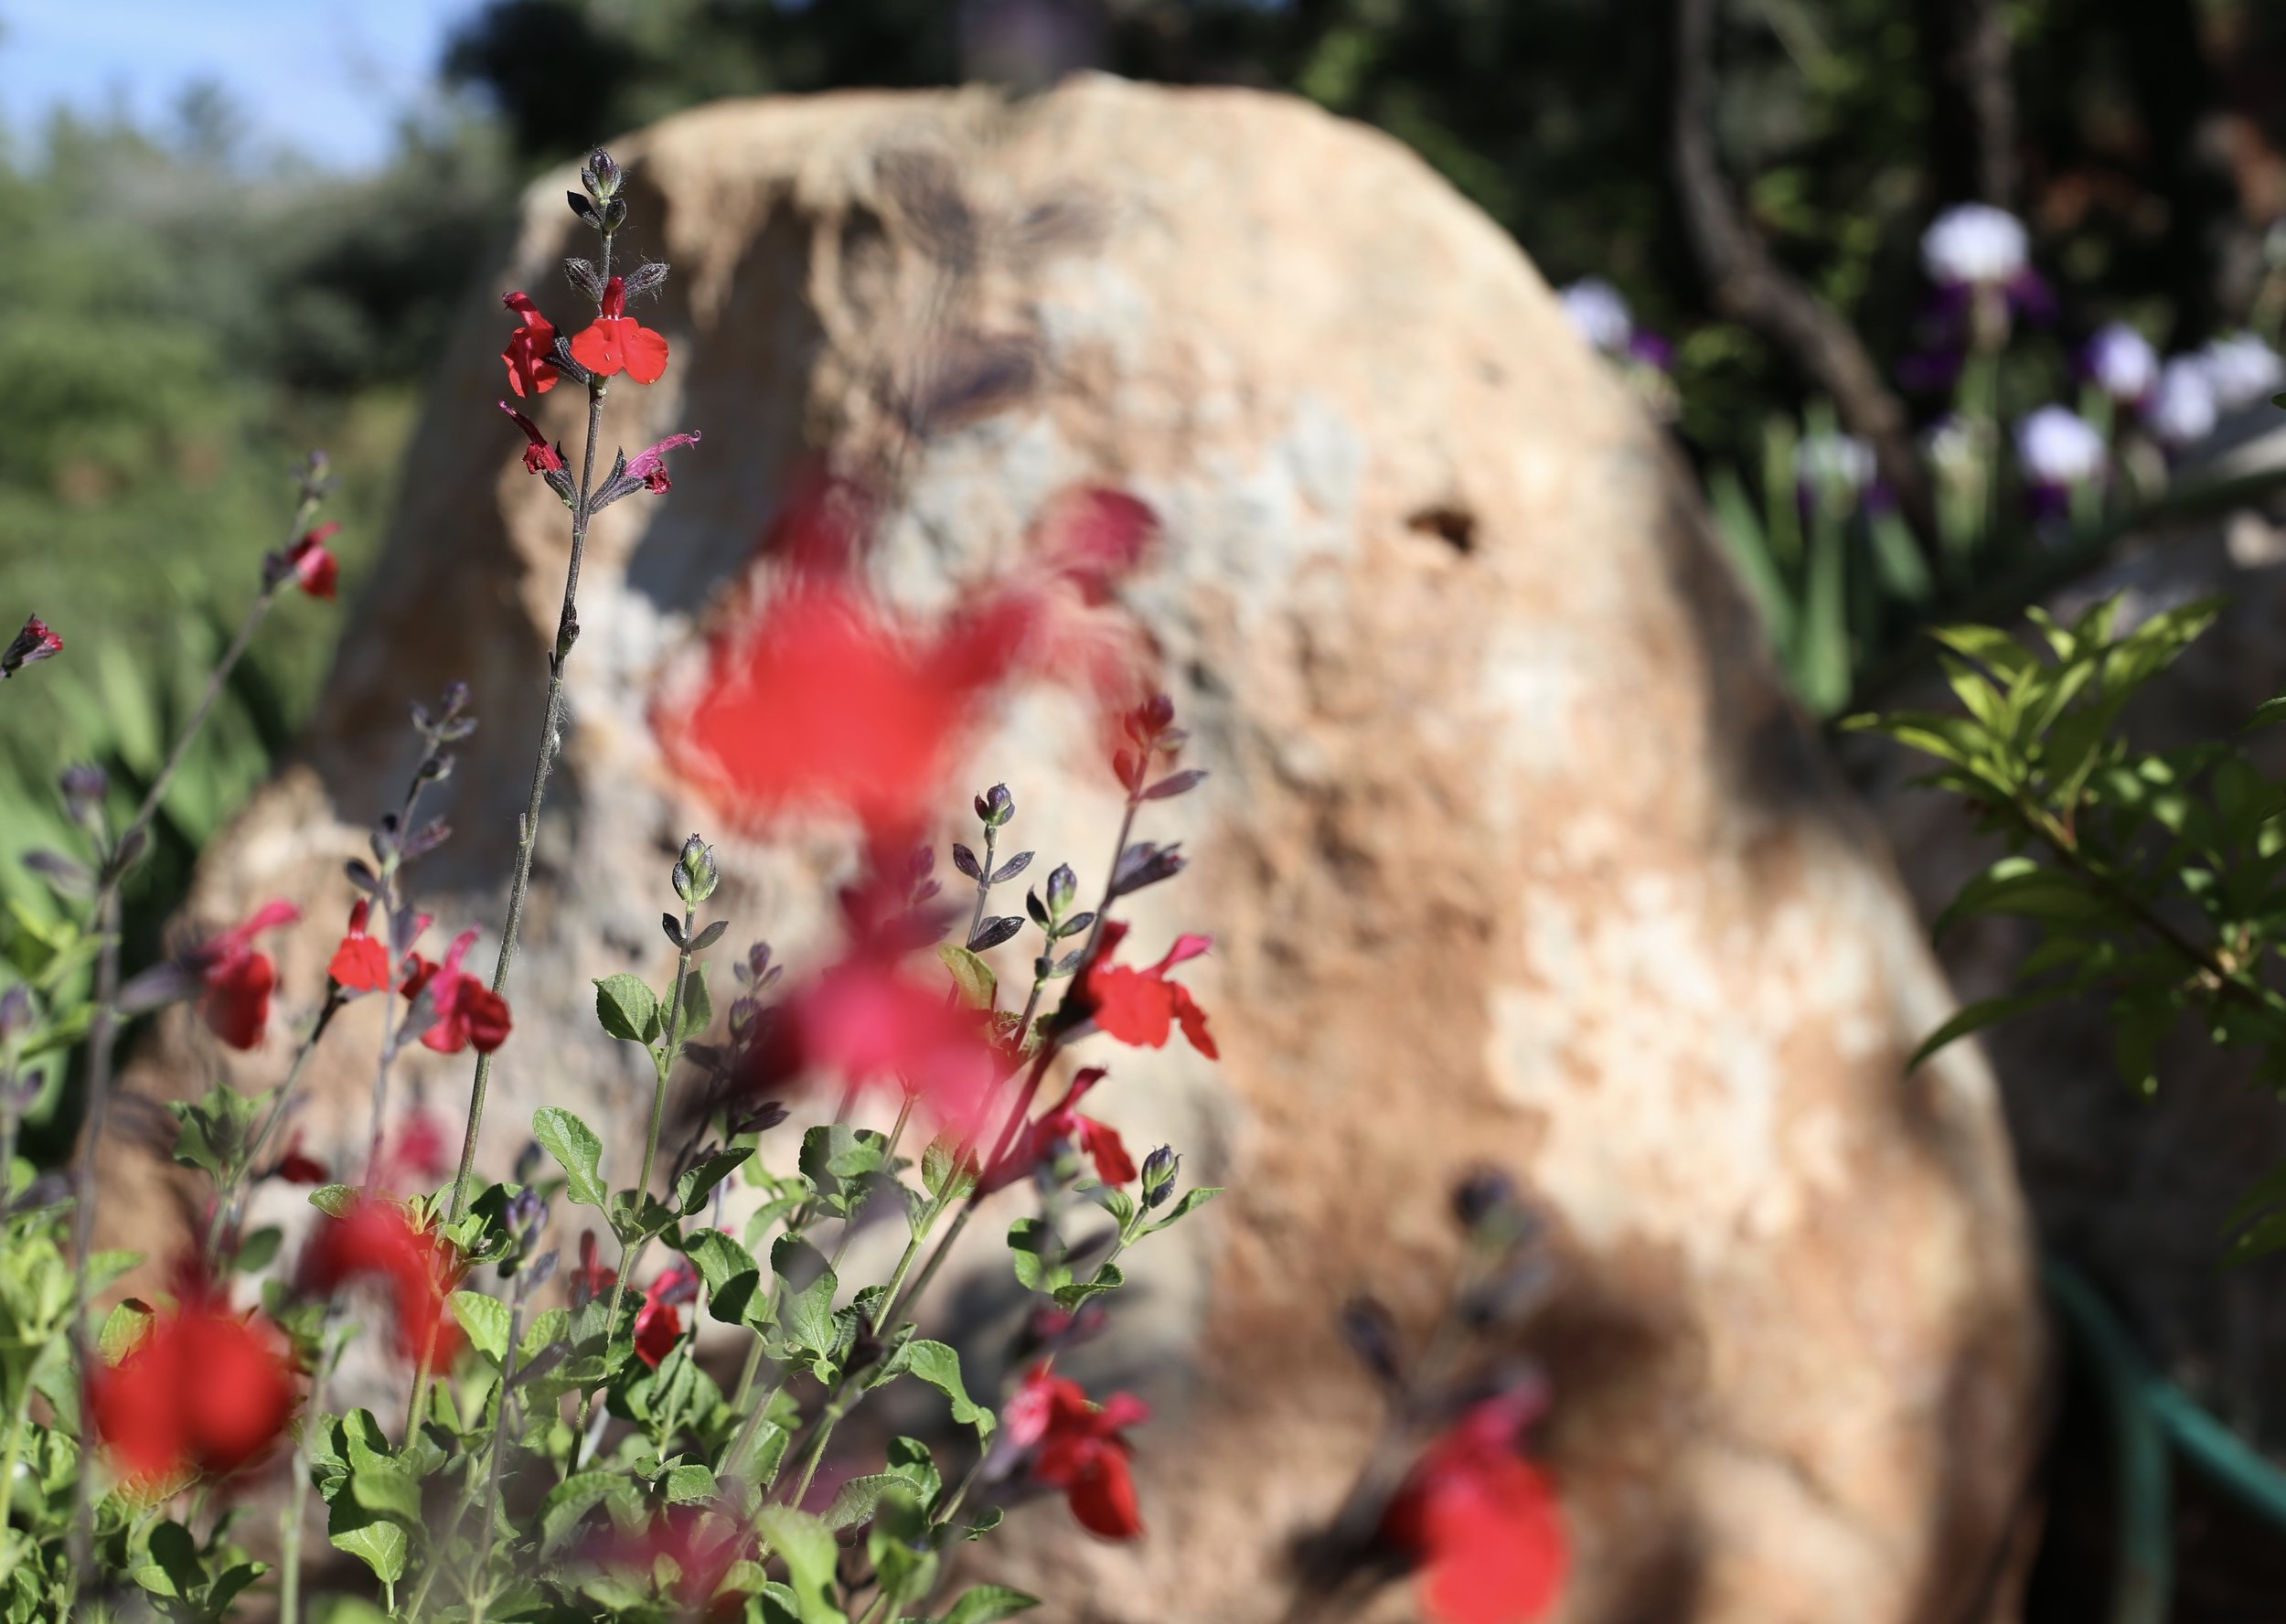 Red flowers by a pink rock, swaying in the breeze.